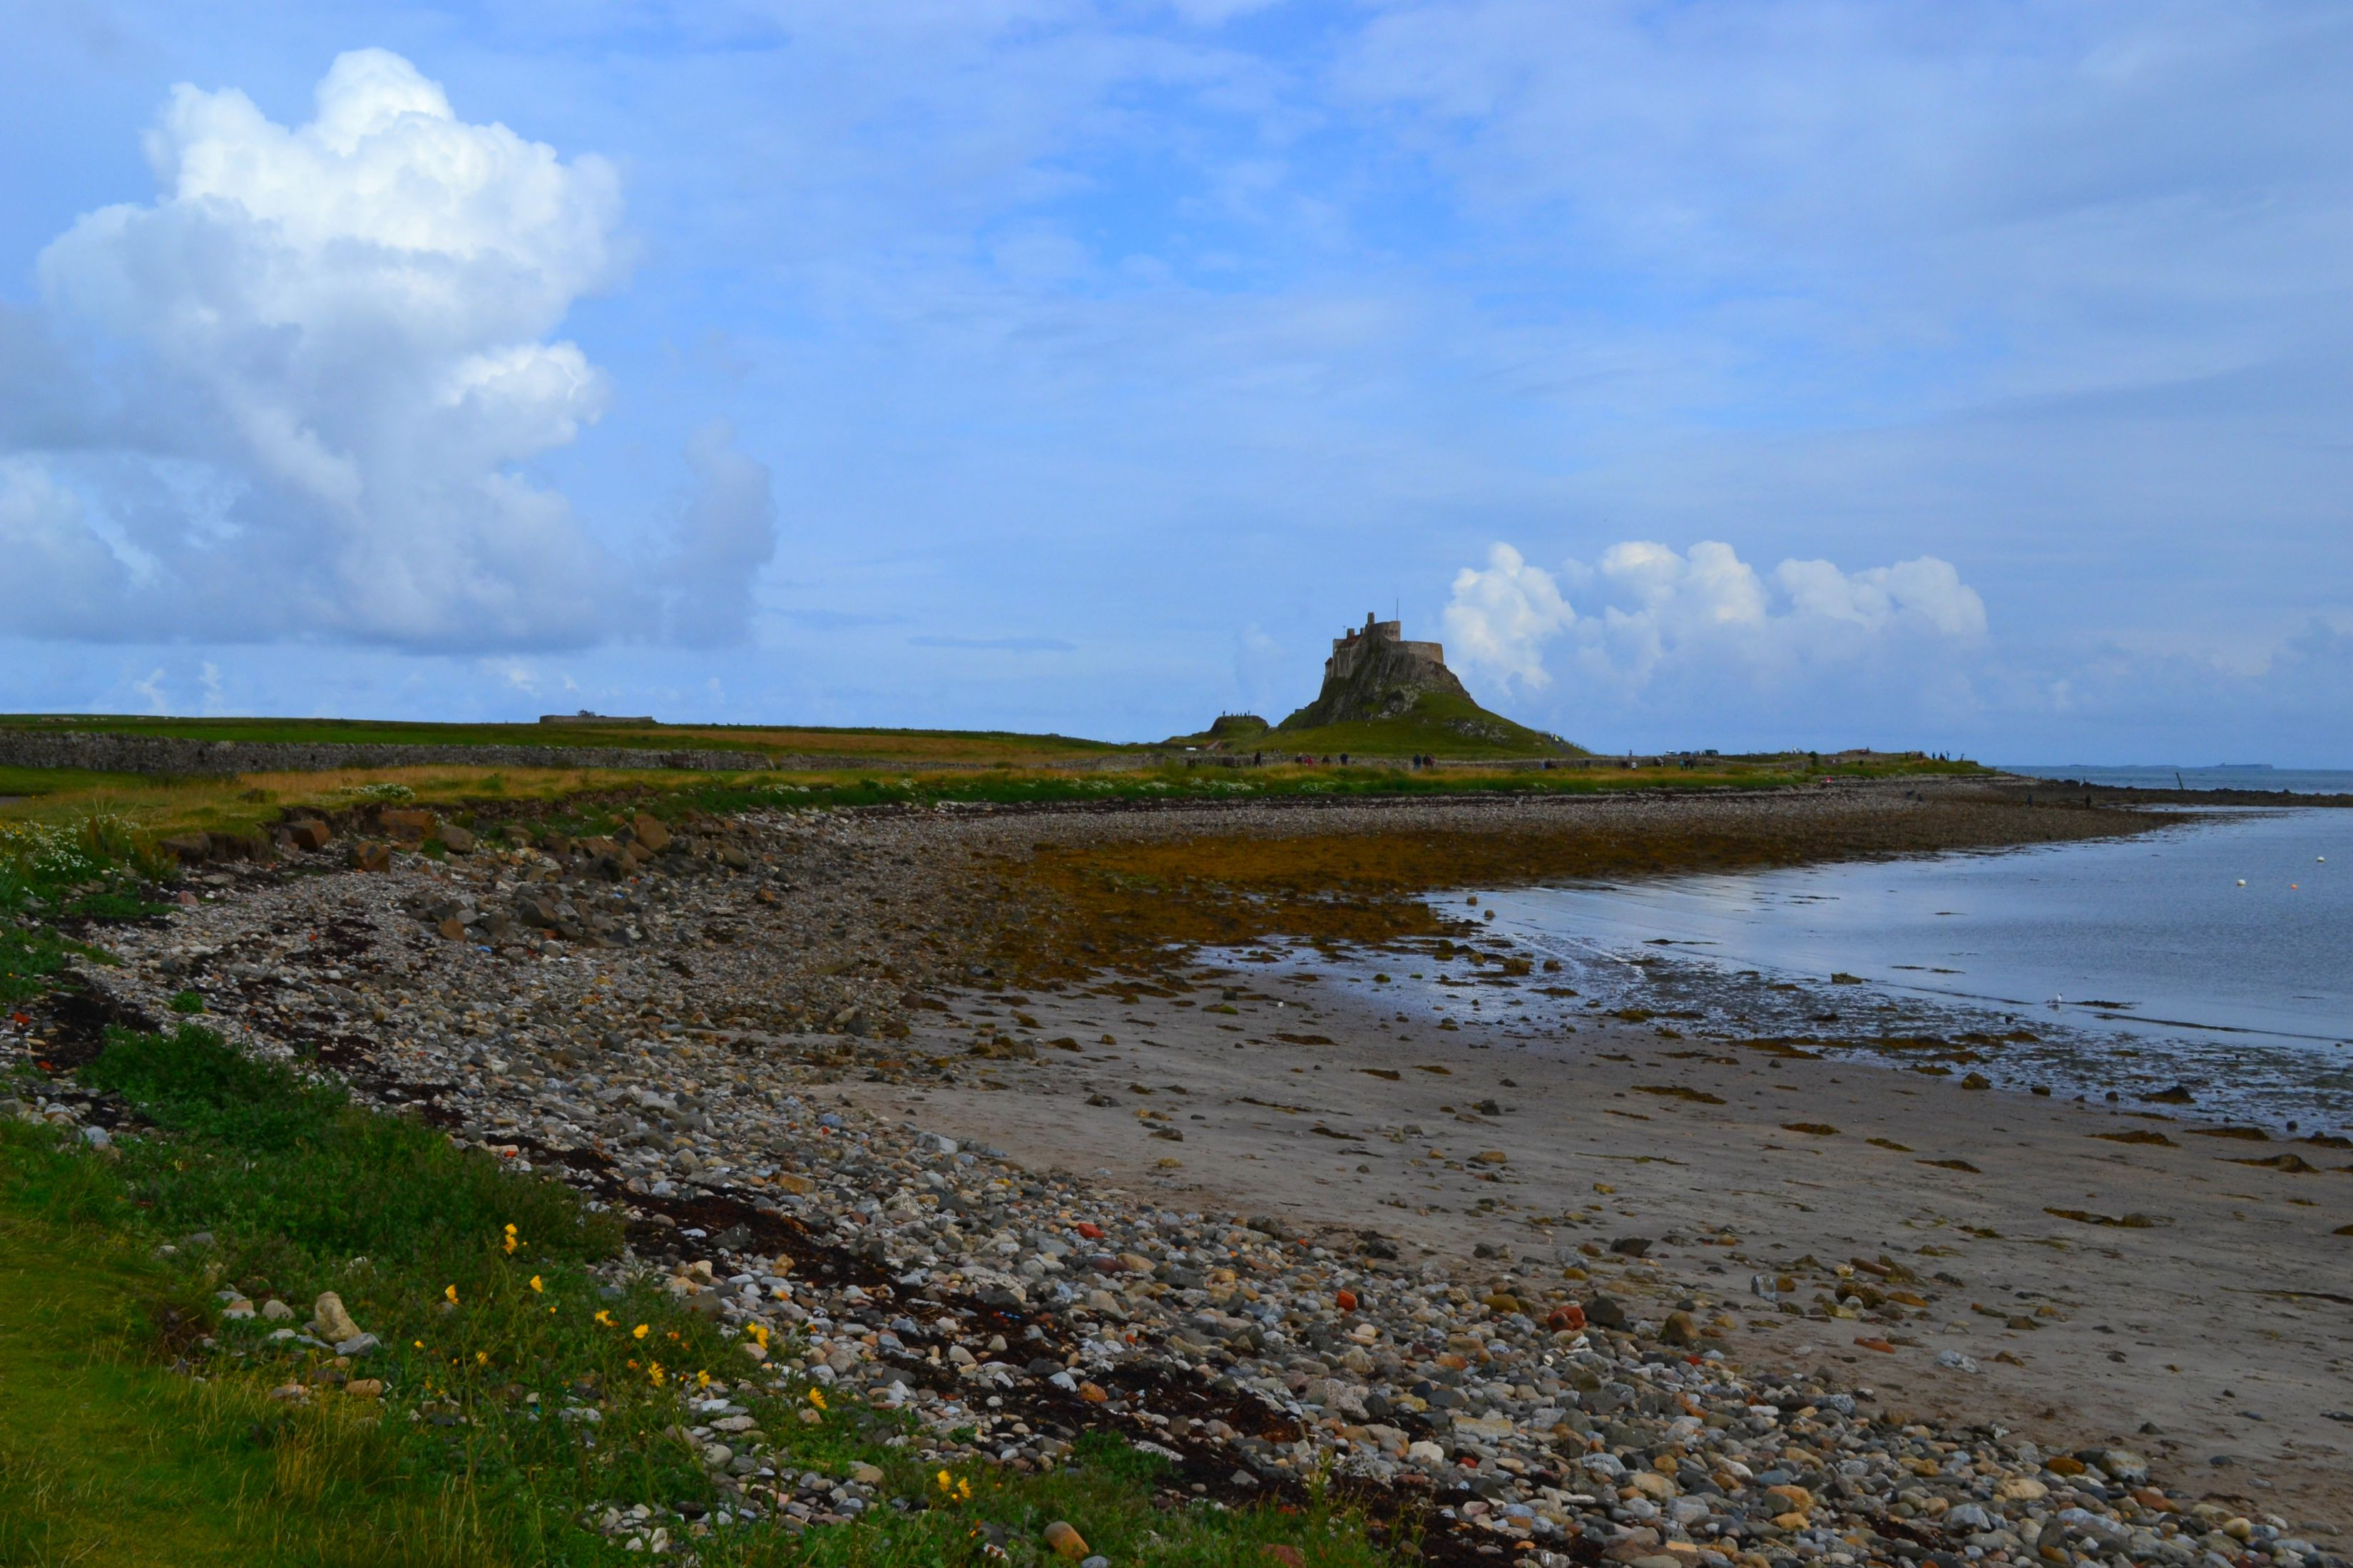 The Holy Island Castle